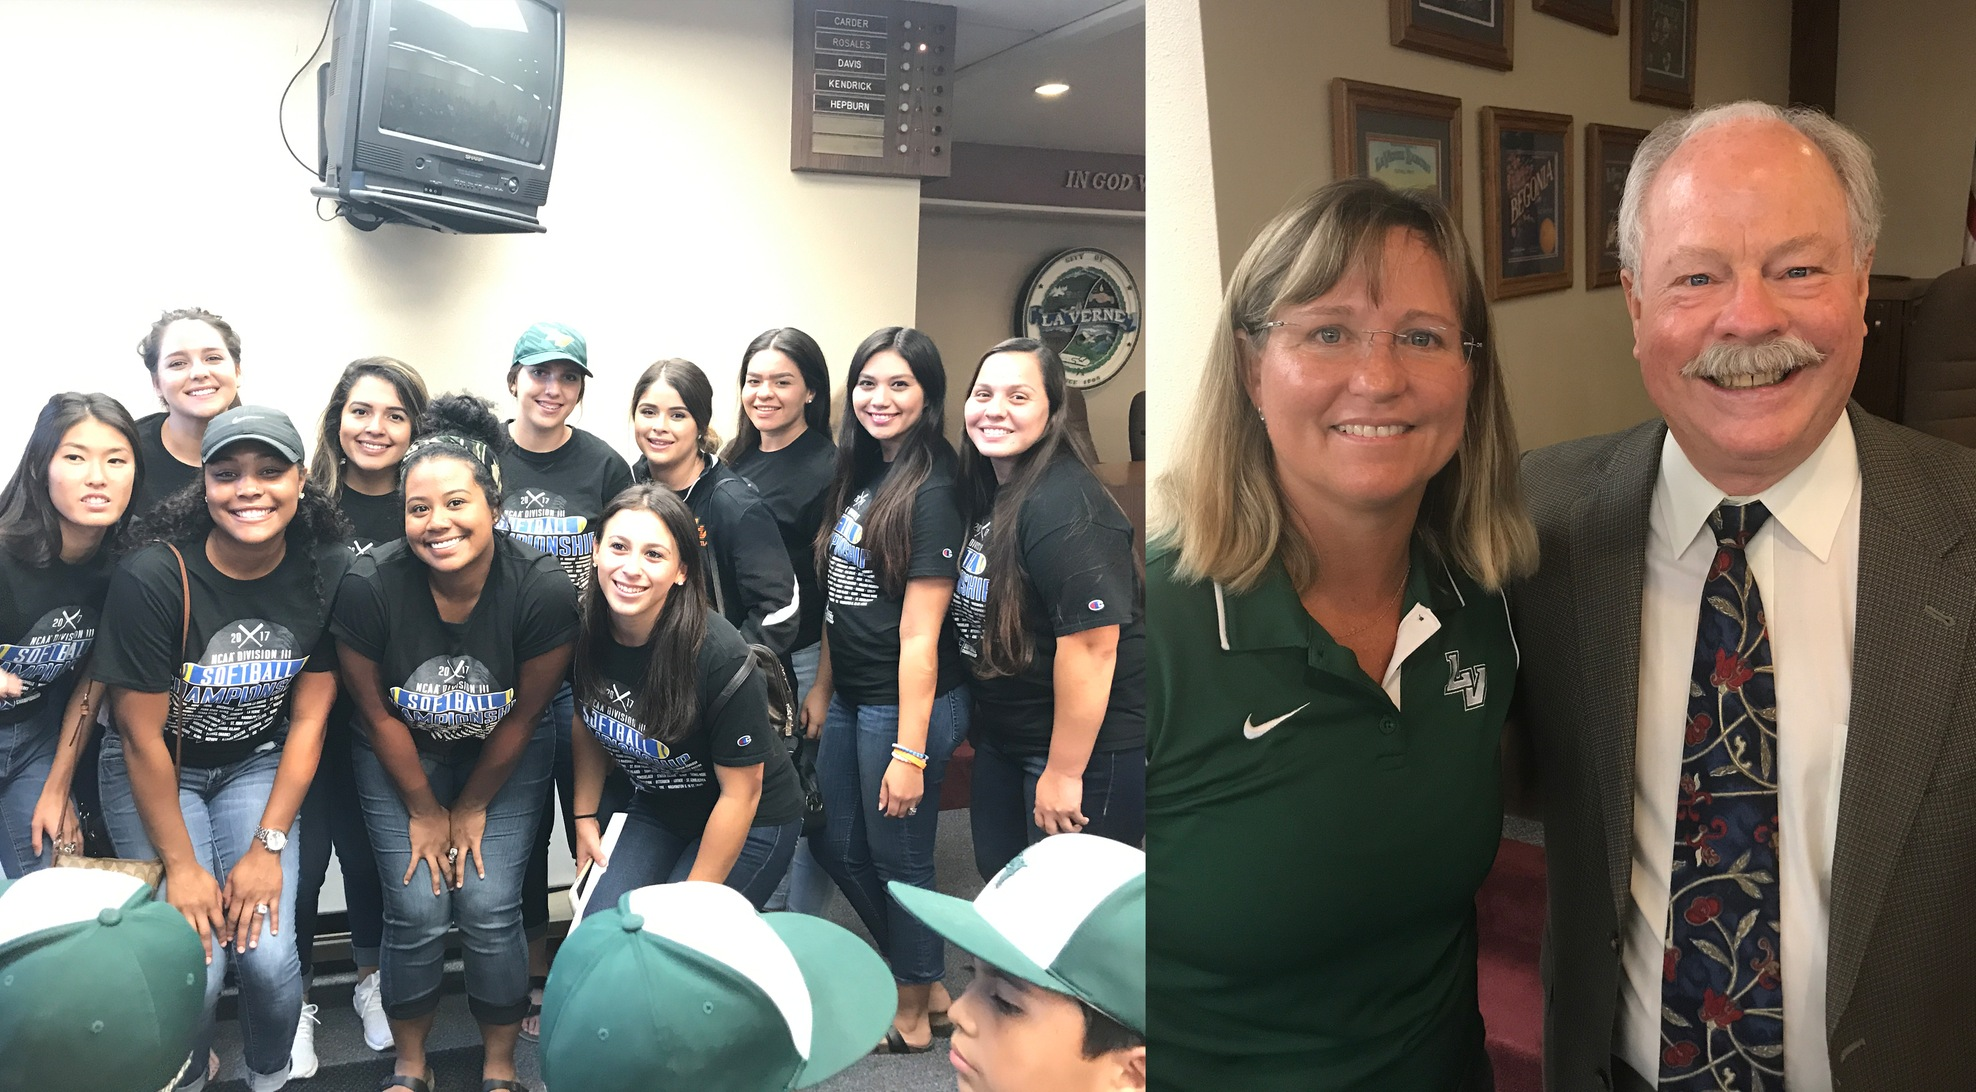 La Verne Softball honored at City Hall